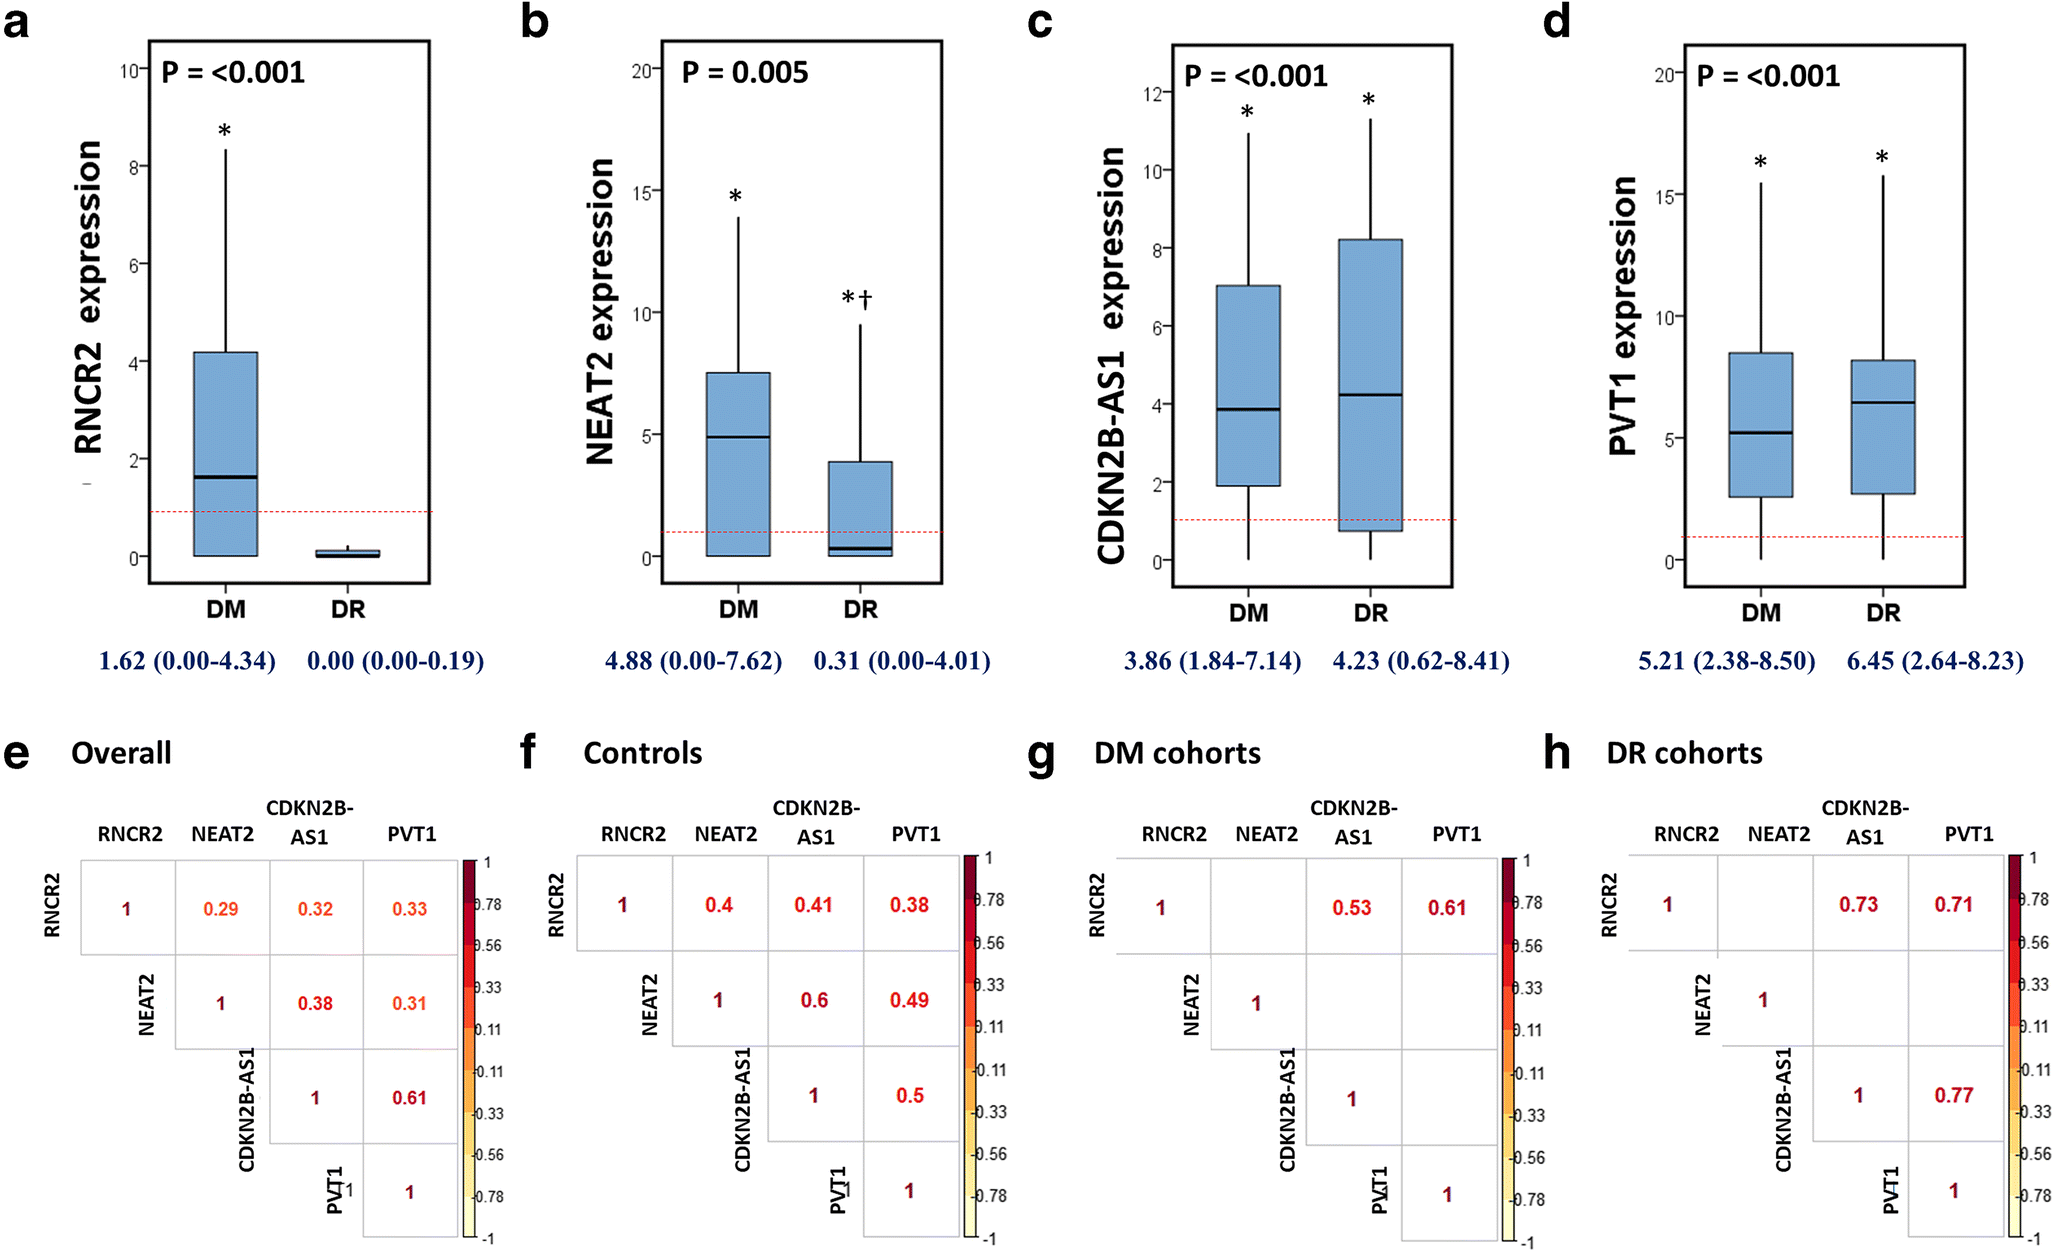 Deciphering the role of circulating lncRNAs: RNCR2, NEAT2